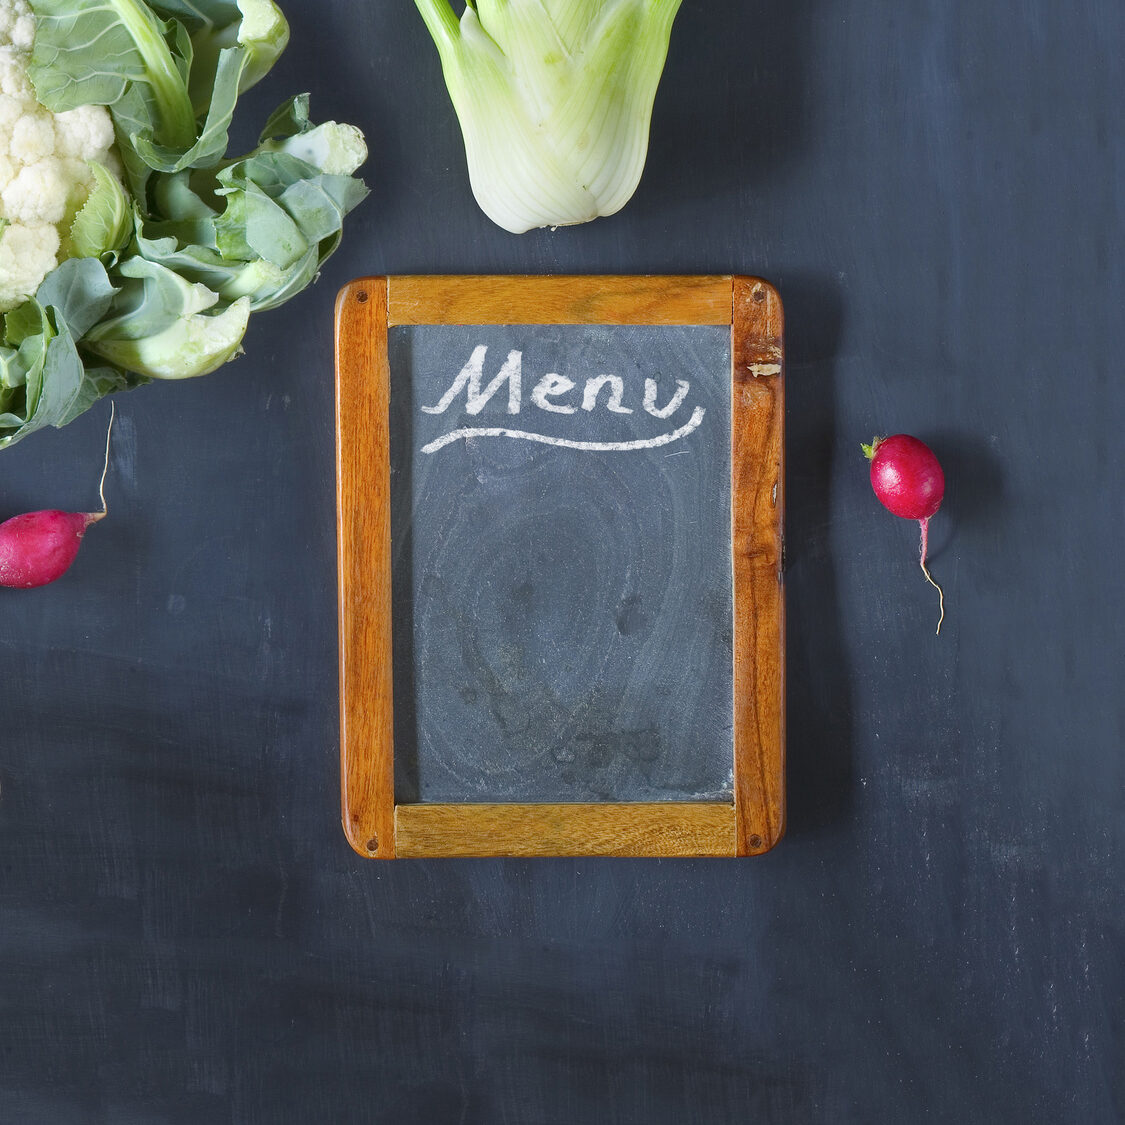 Reataurant menu template with vegetables and empty black board, flat lay